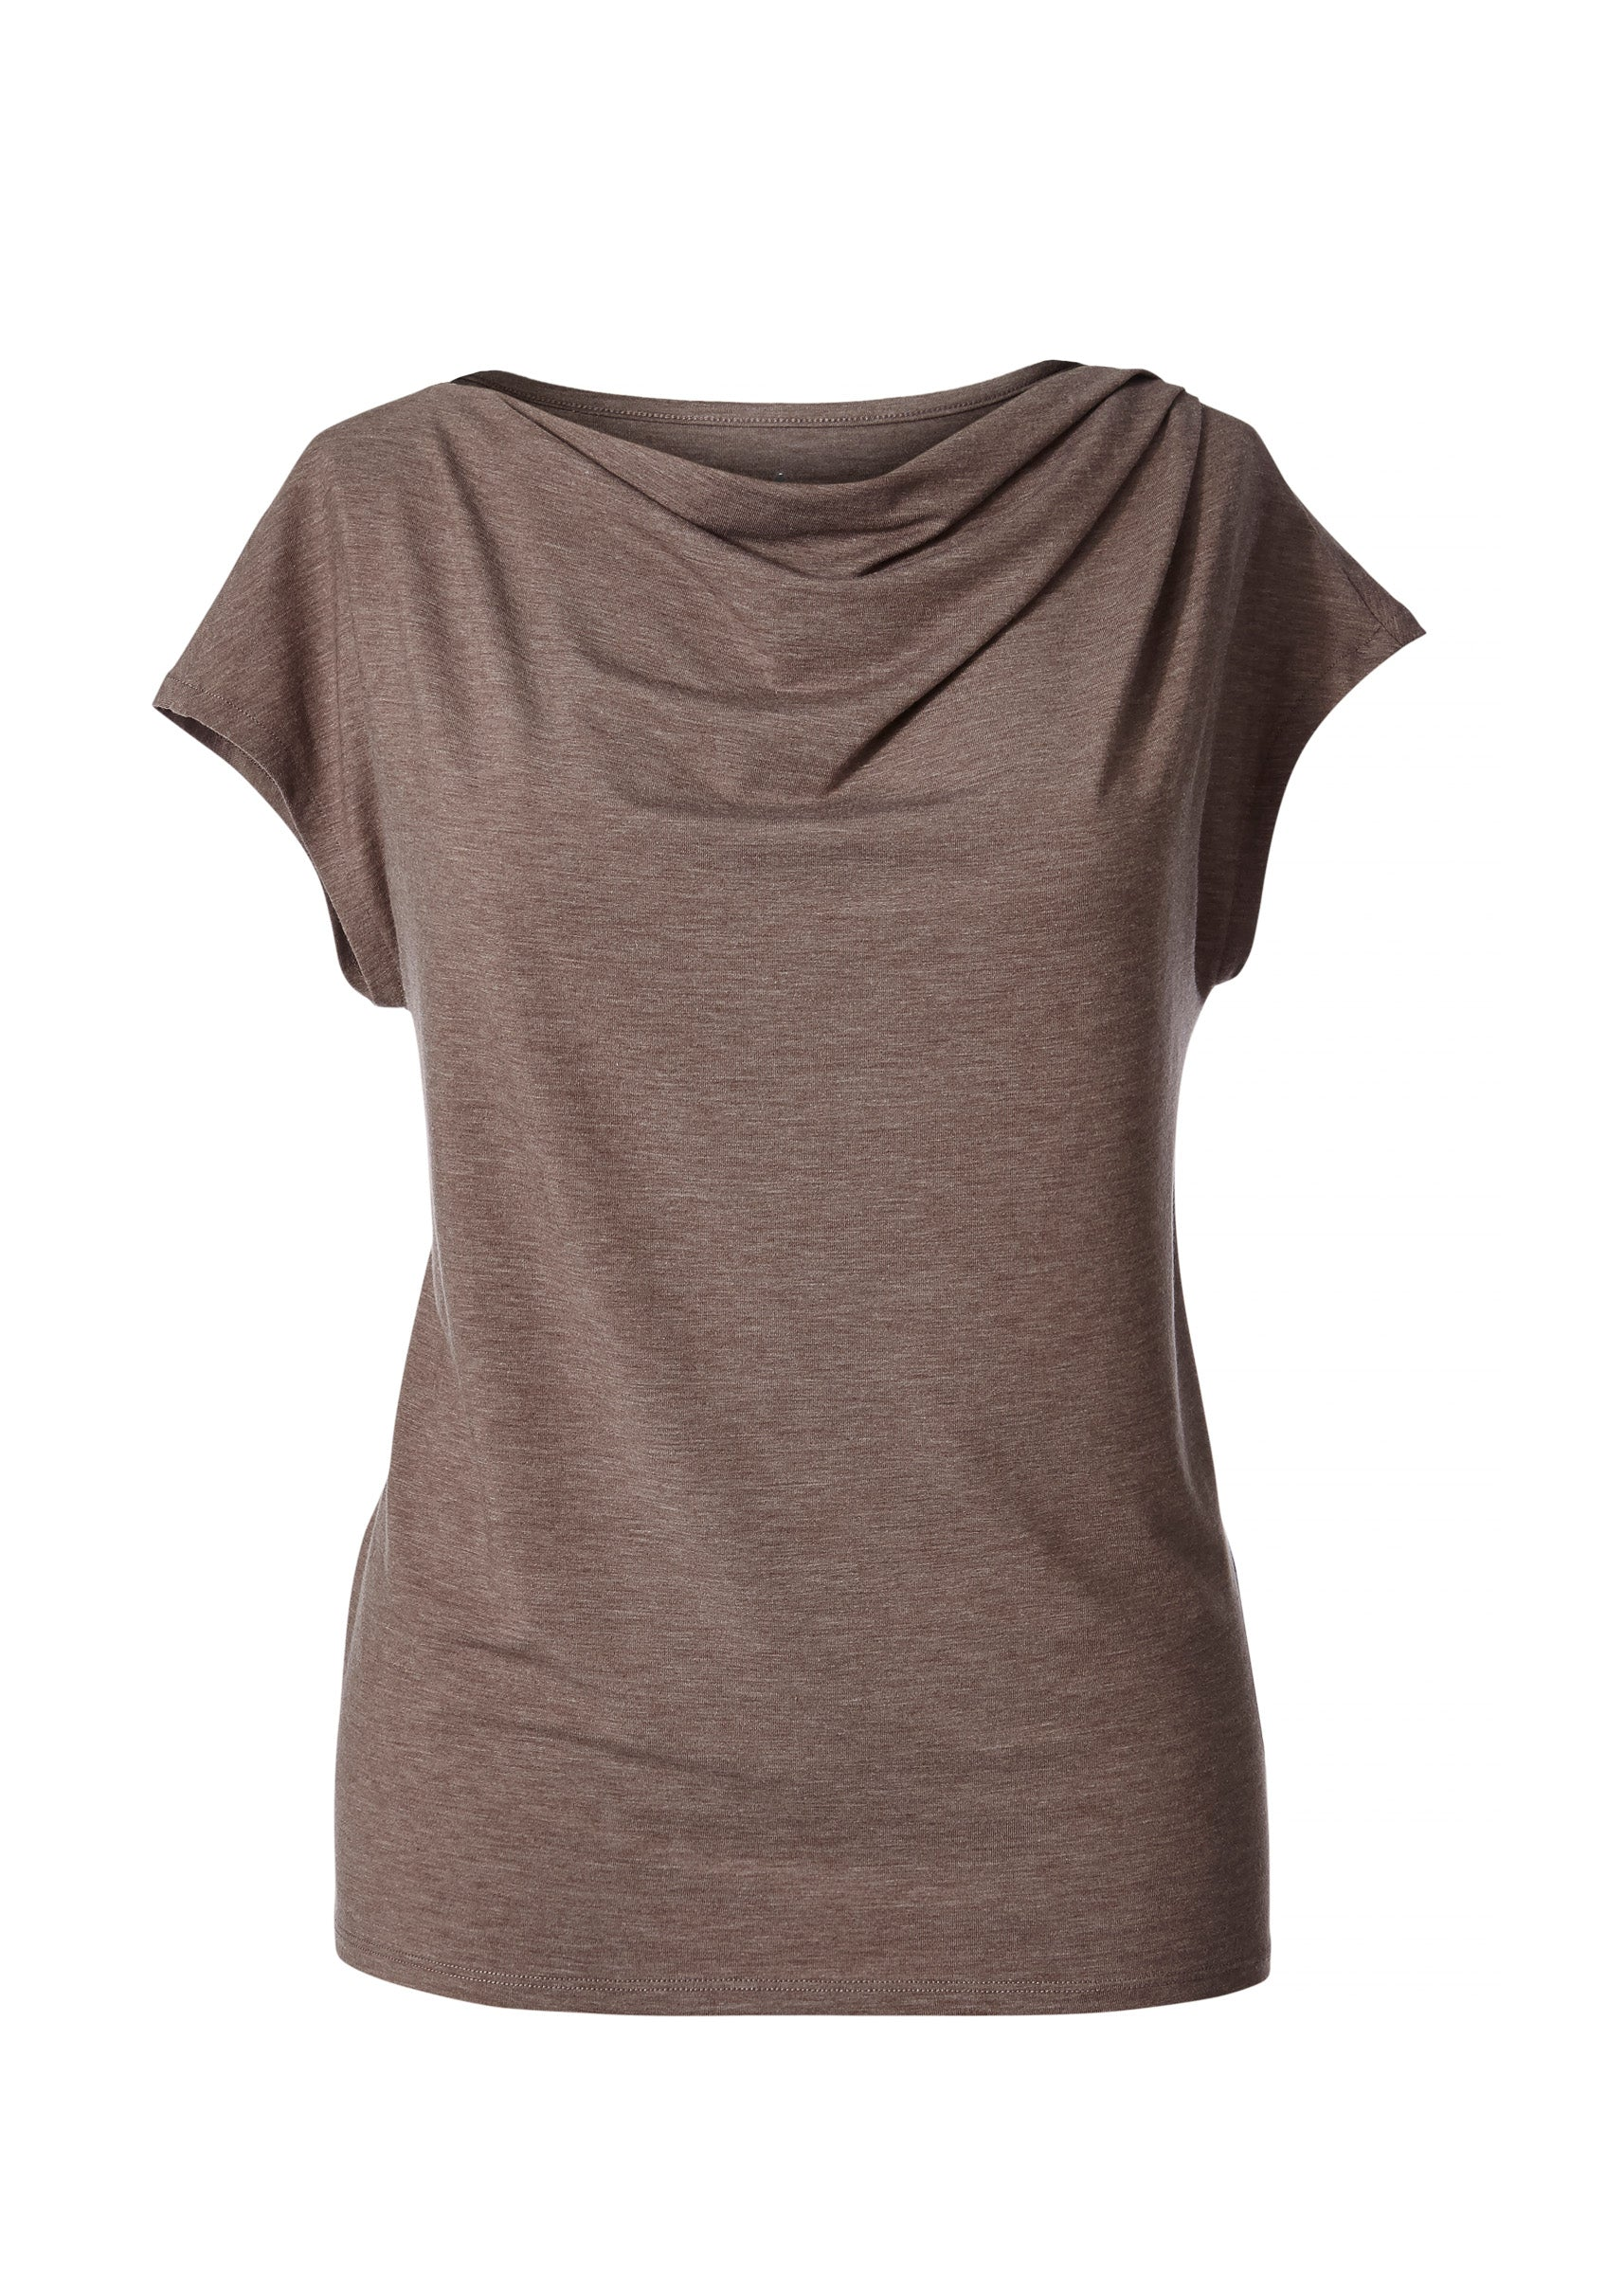 Royal Robbins Essential Tencel Cowl Top for Ladies in Falcon Heather